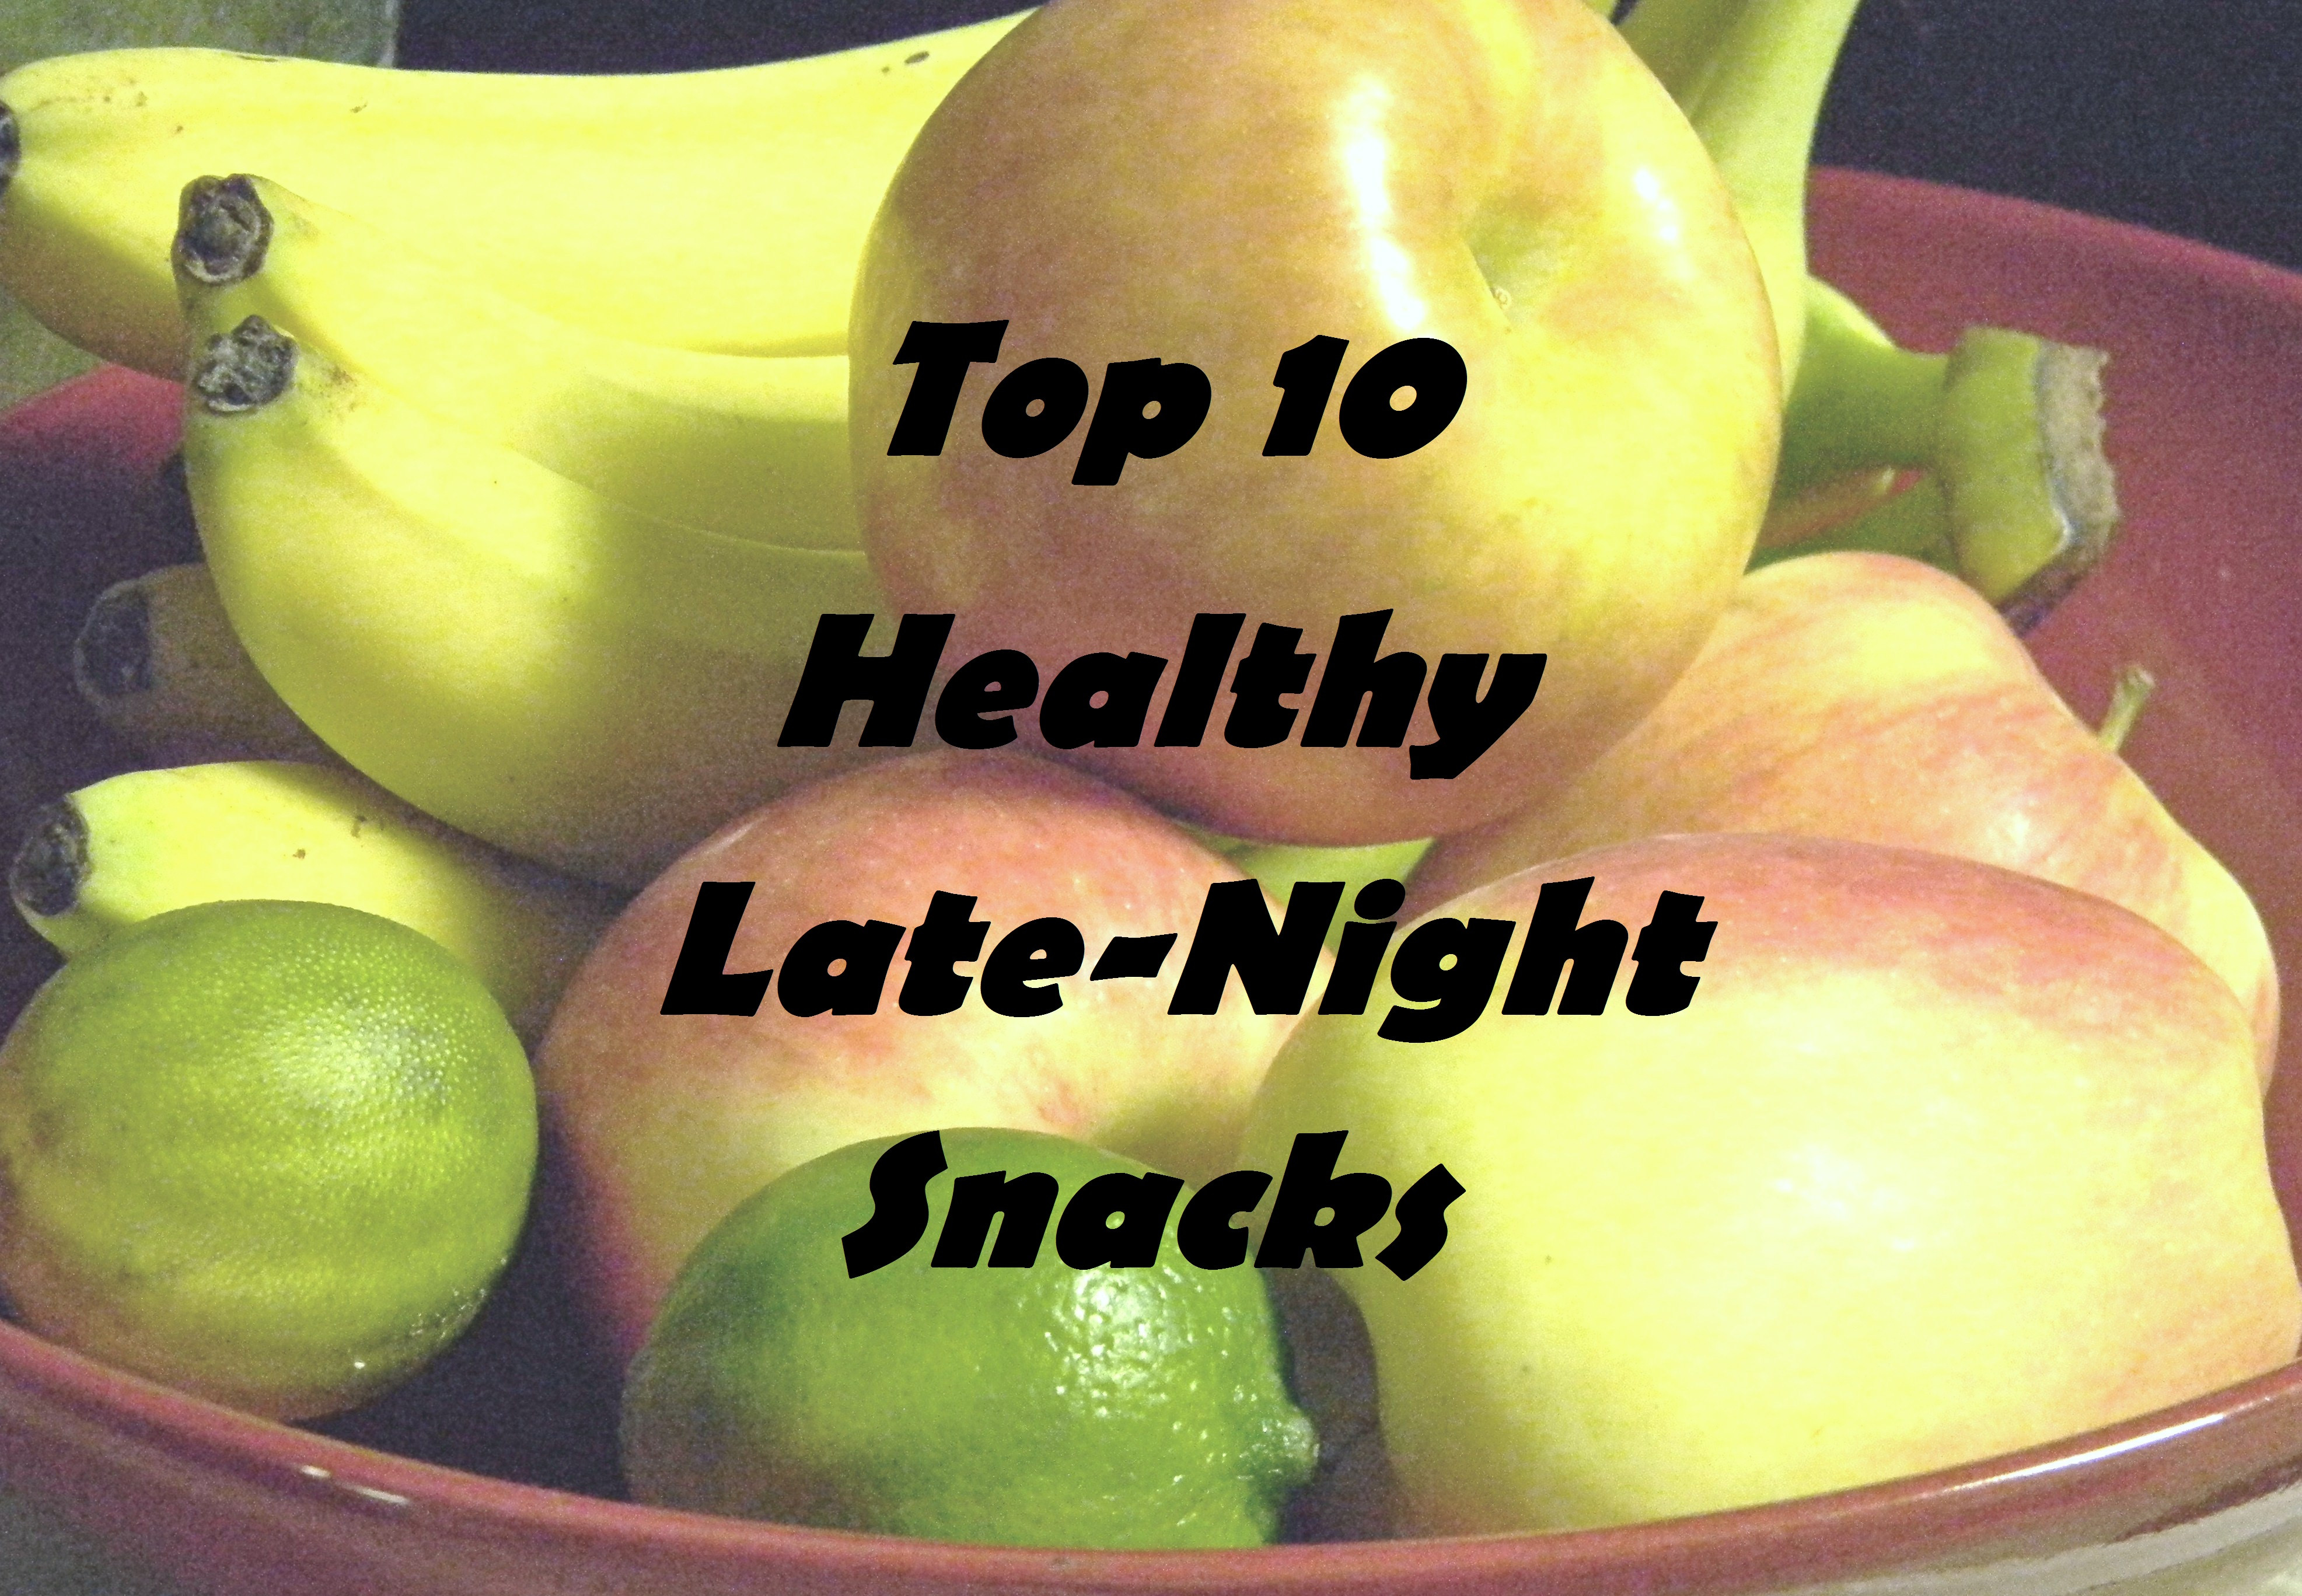 Late Night Snacks Healthy  Top 10 Healthy Late Night Snacks Pretty Hungry